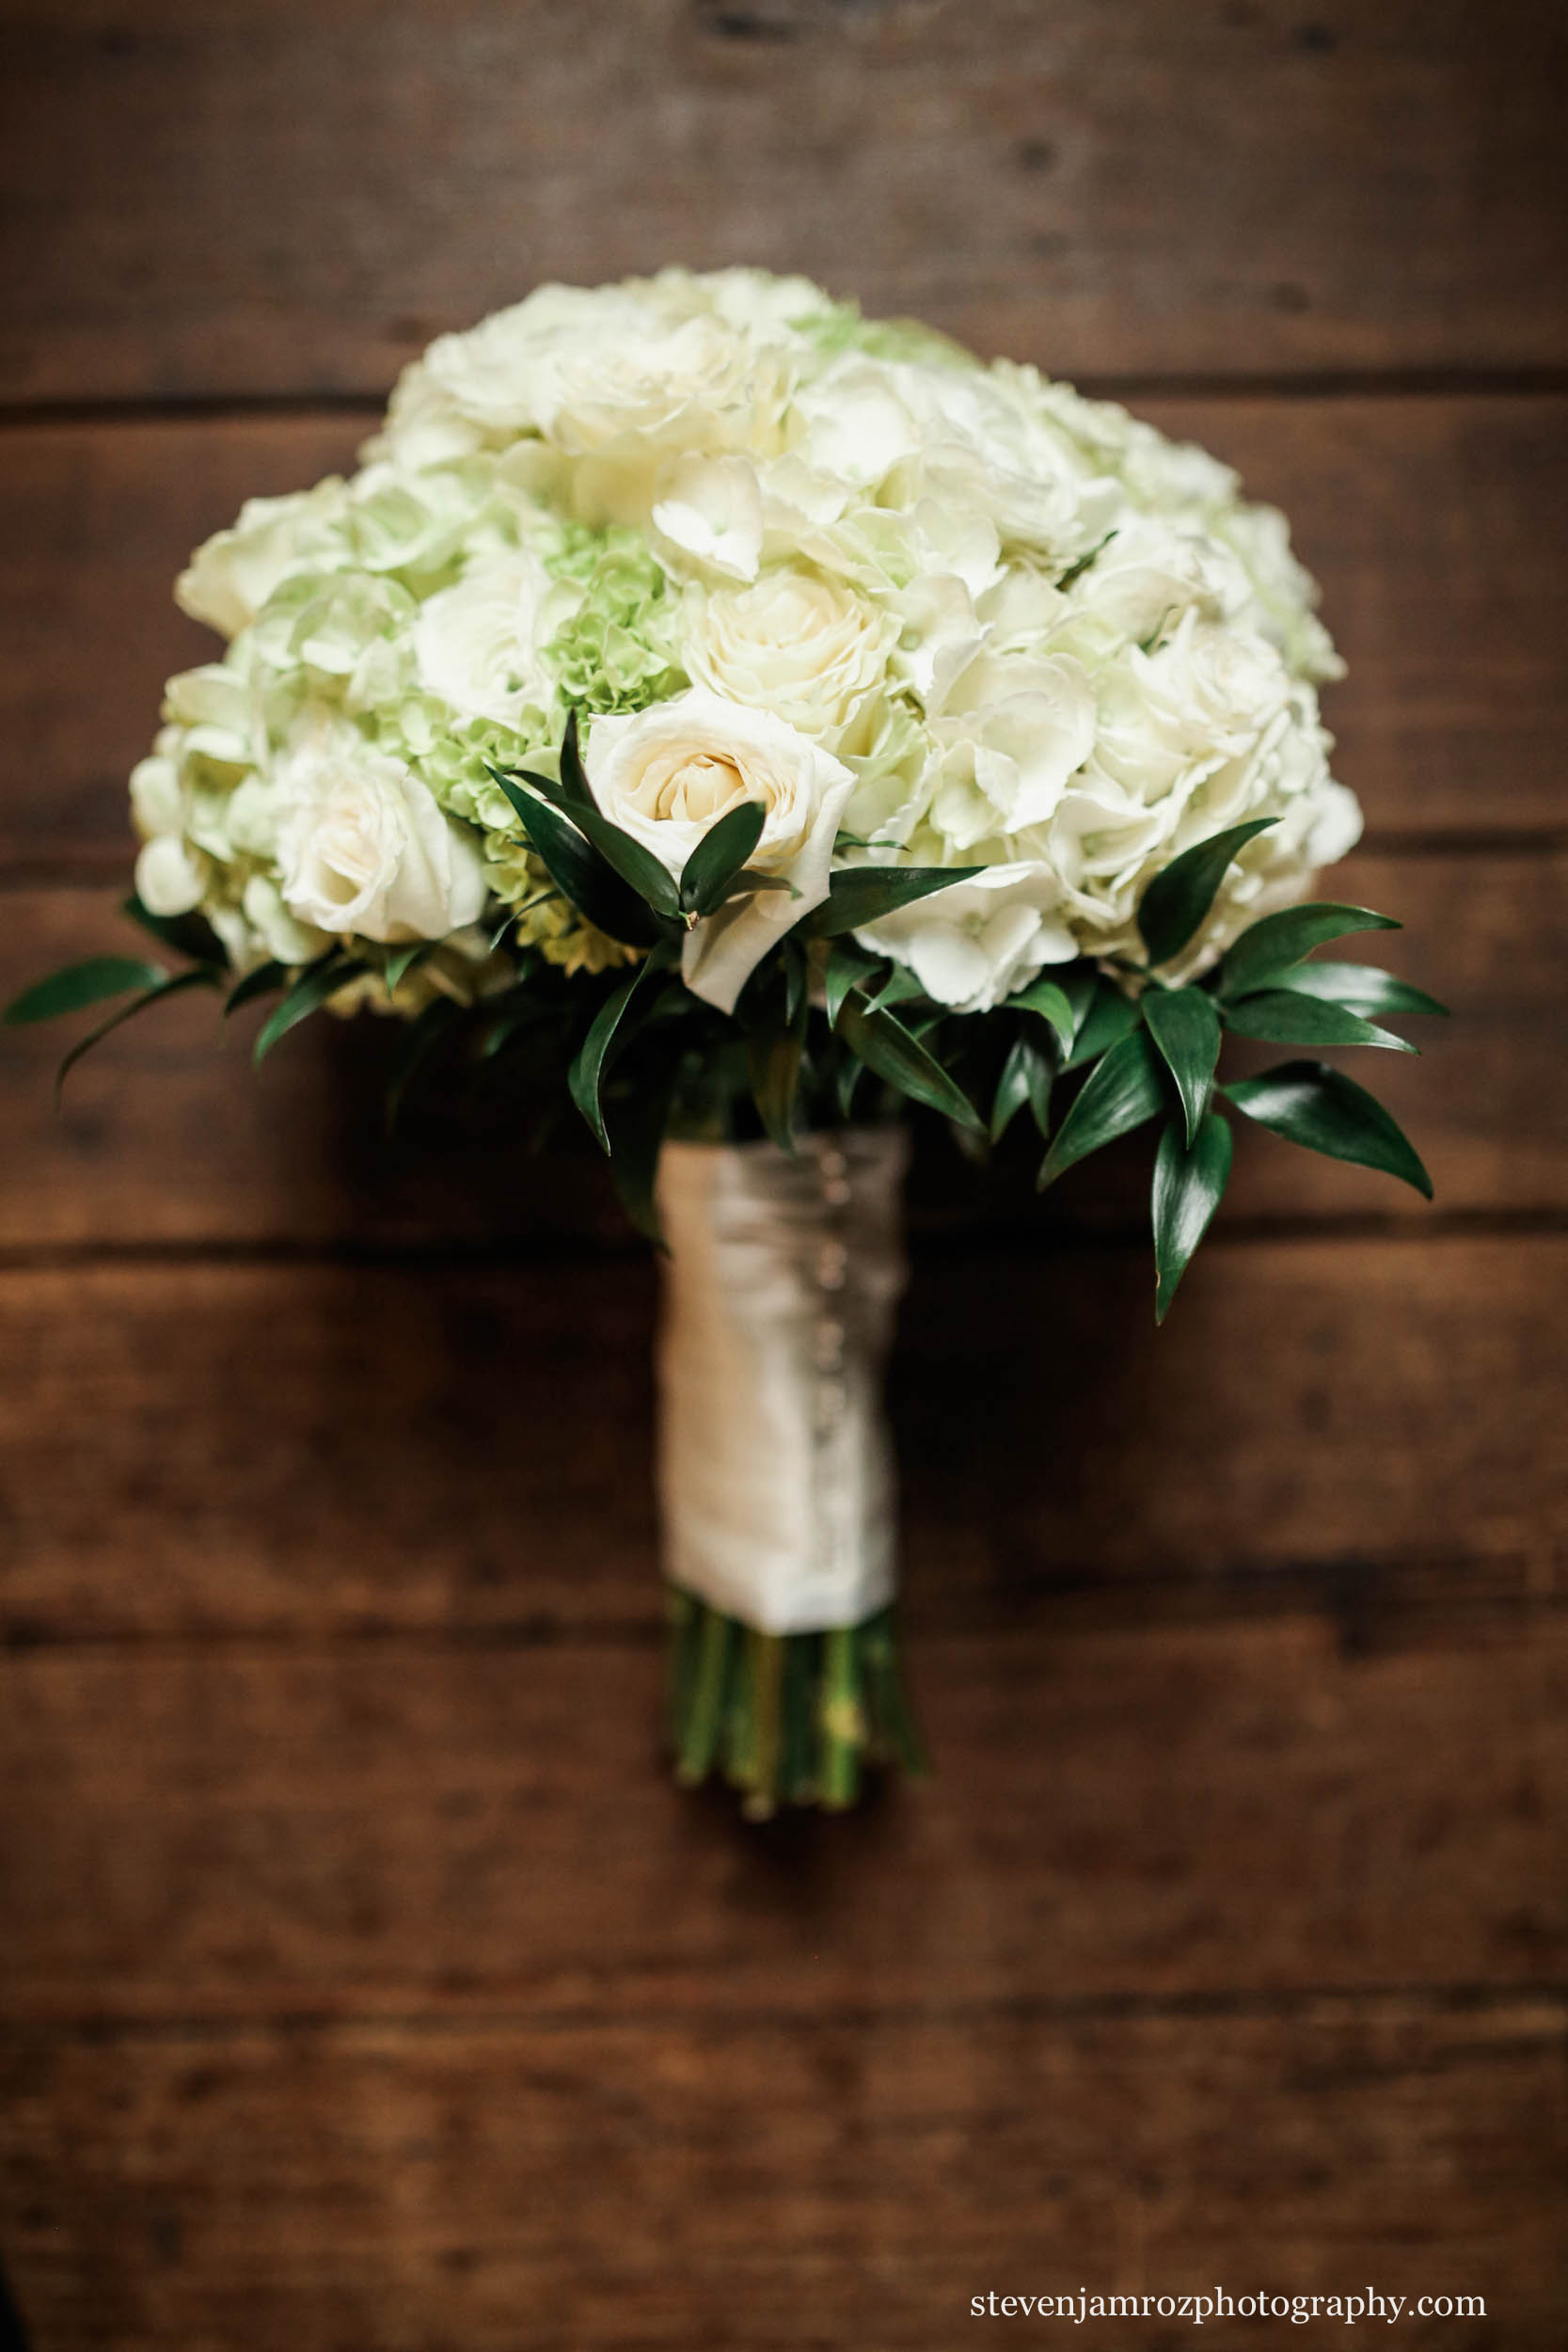 flowers-rich-colors-white-green-bouquet-beautiful-steven-jamroz-0752.jpg